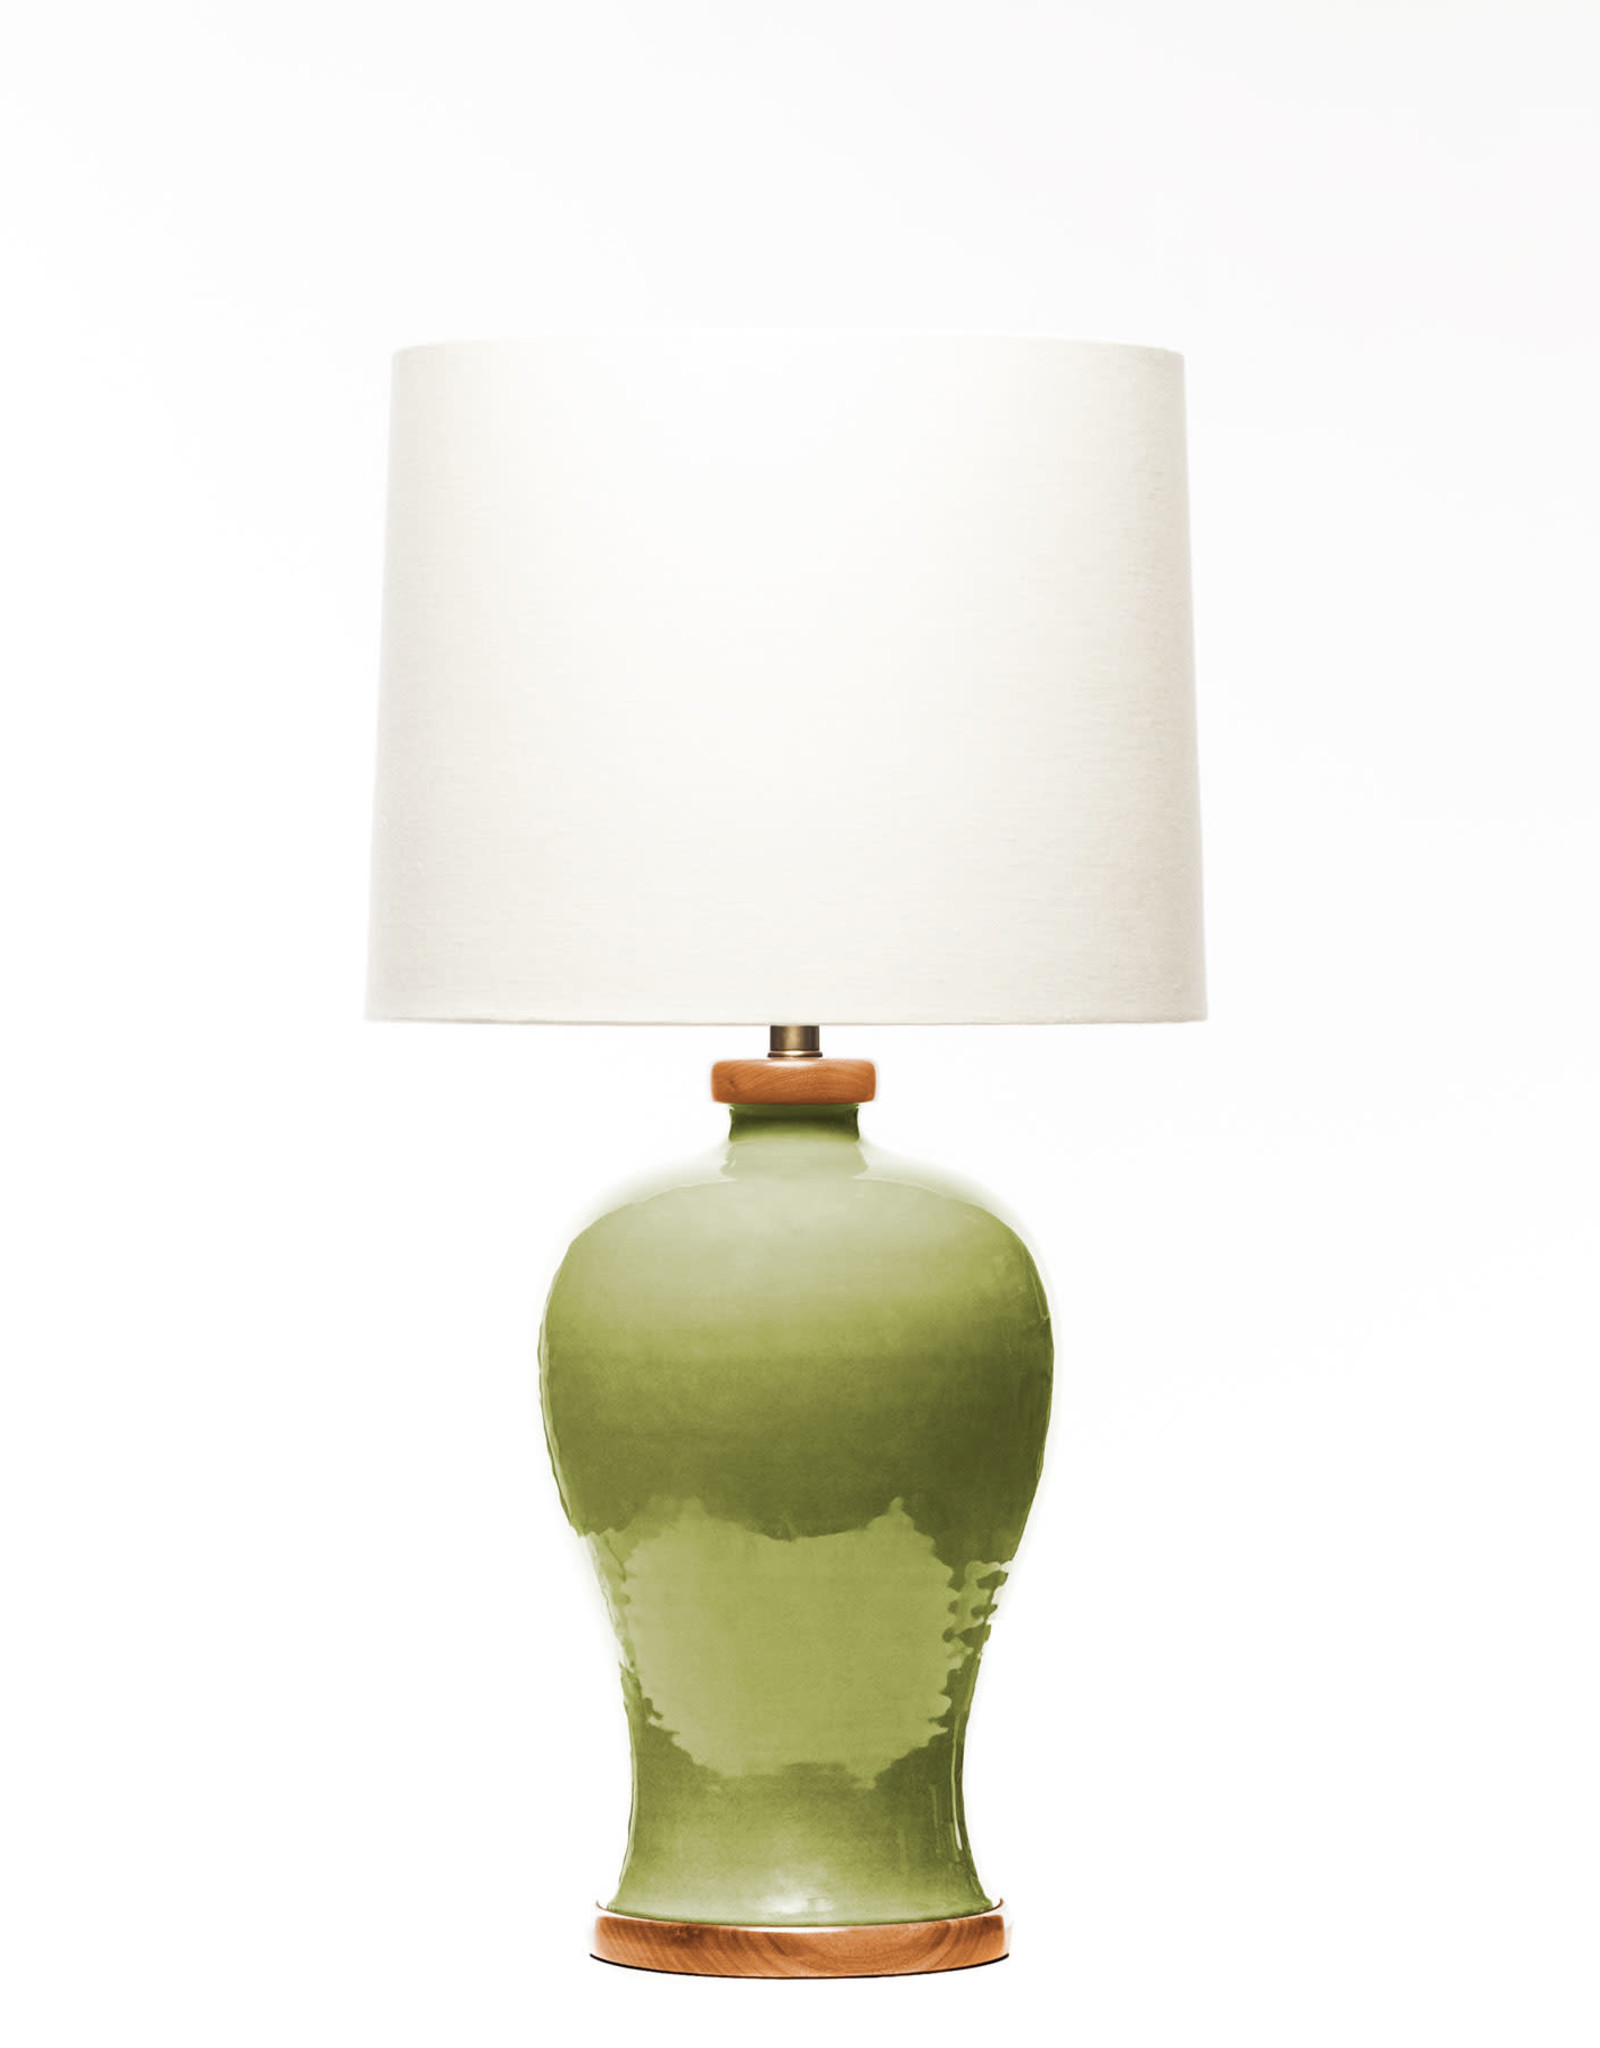 Lawrence & Scott Dashiell Table Lamp in Celadon with Sapele Base